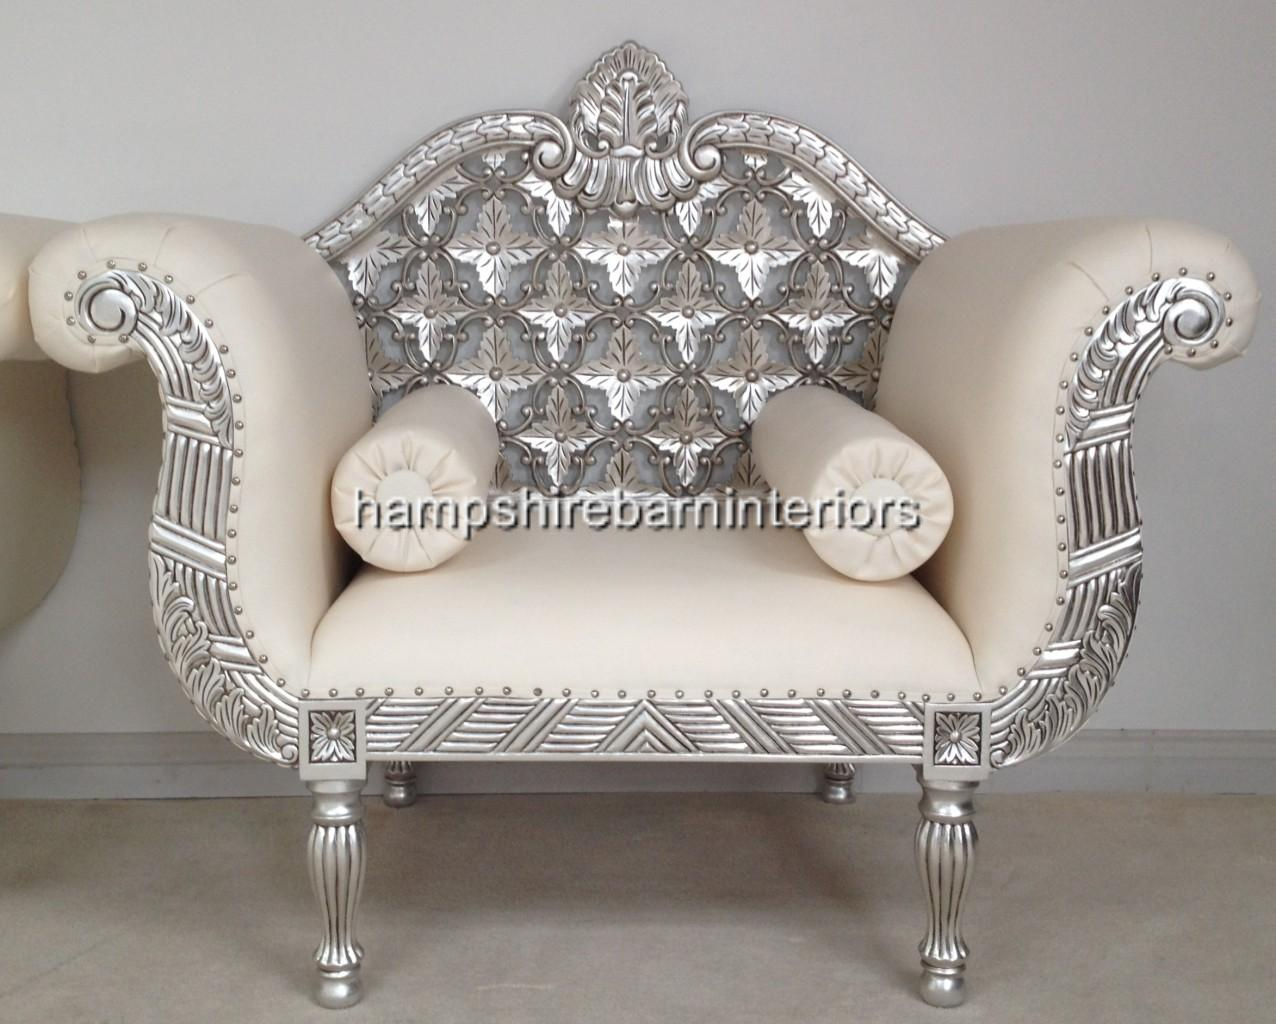 A Royal Wedding Set Sofa Plus Two Chairs In Silver Leaf